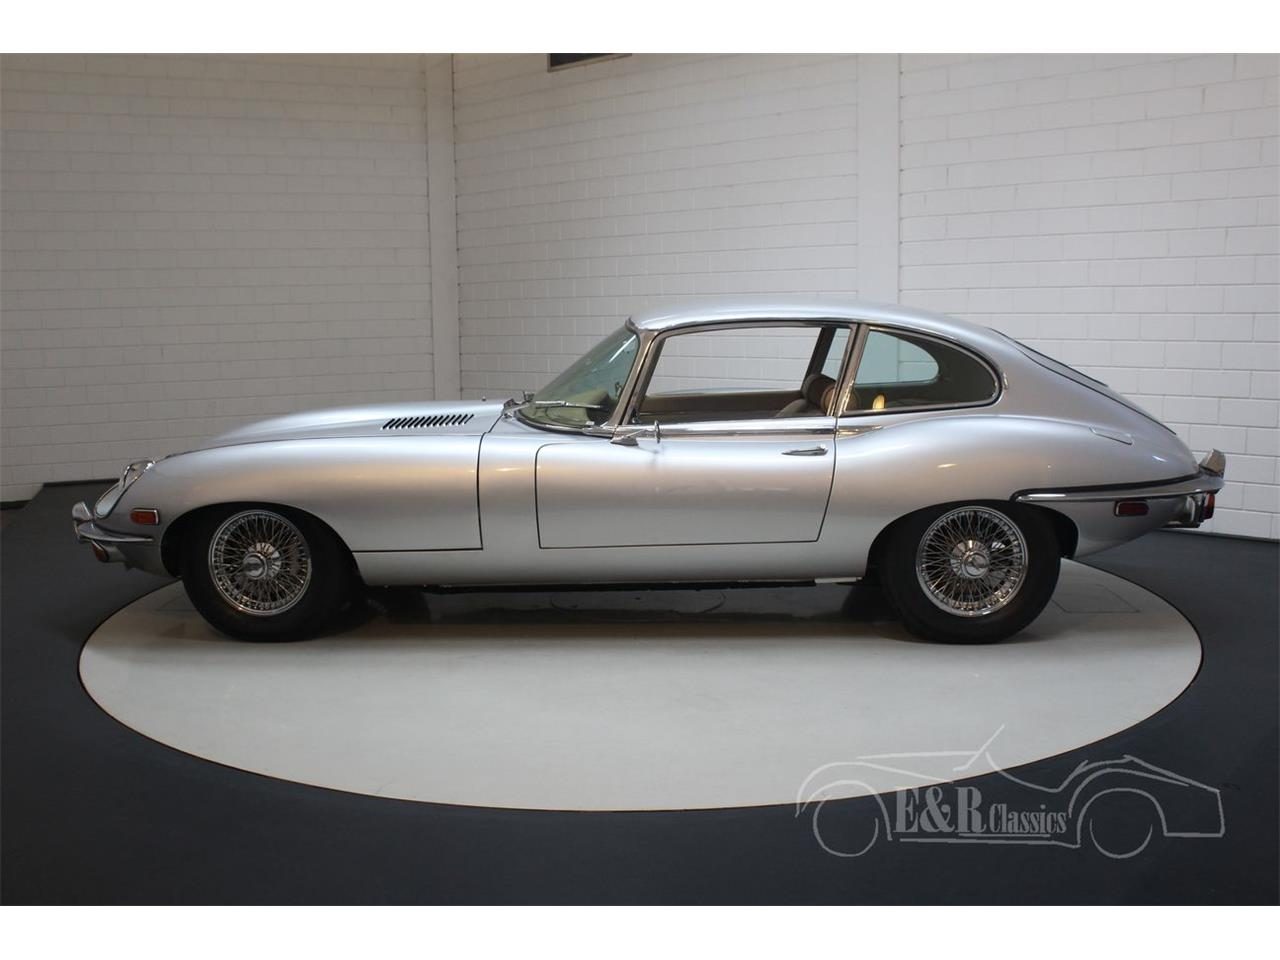 Large Picture of Classic '69 Jaguar E-Type located in Waalwijk noord brabant - $101,000.00 - PRSR